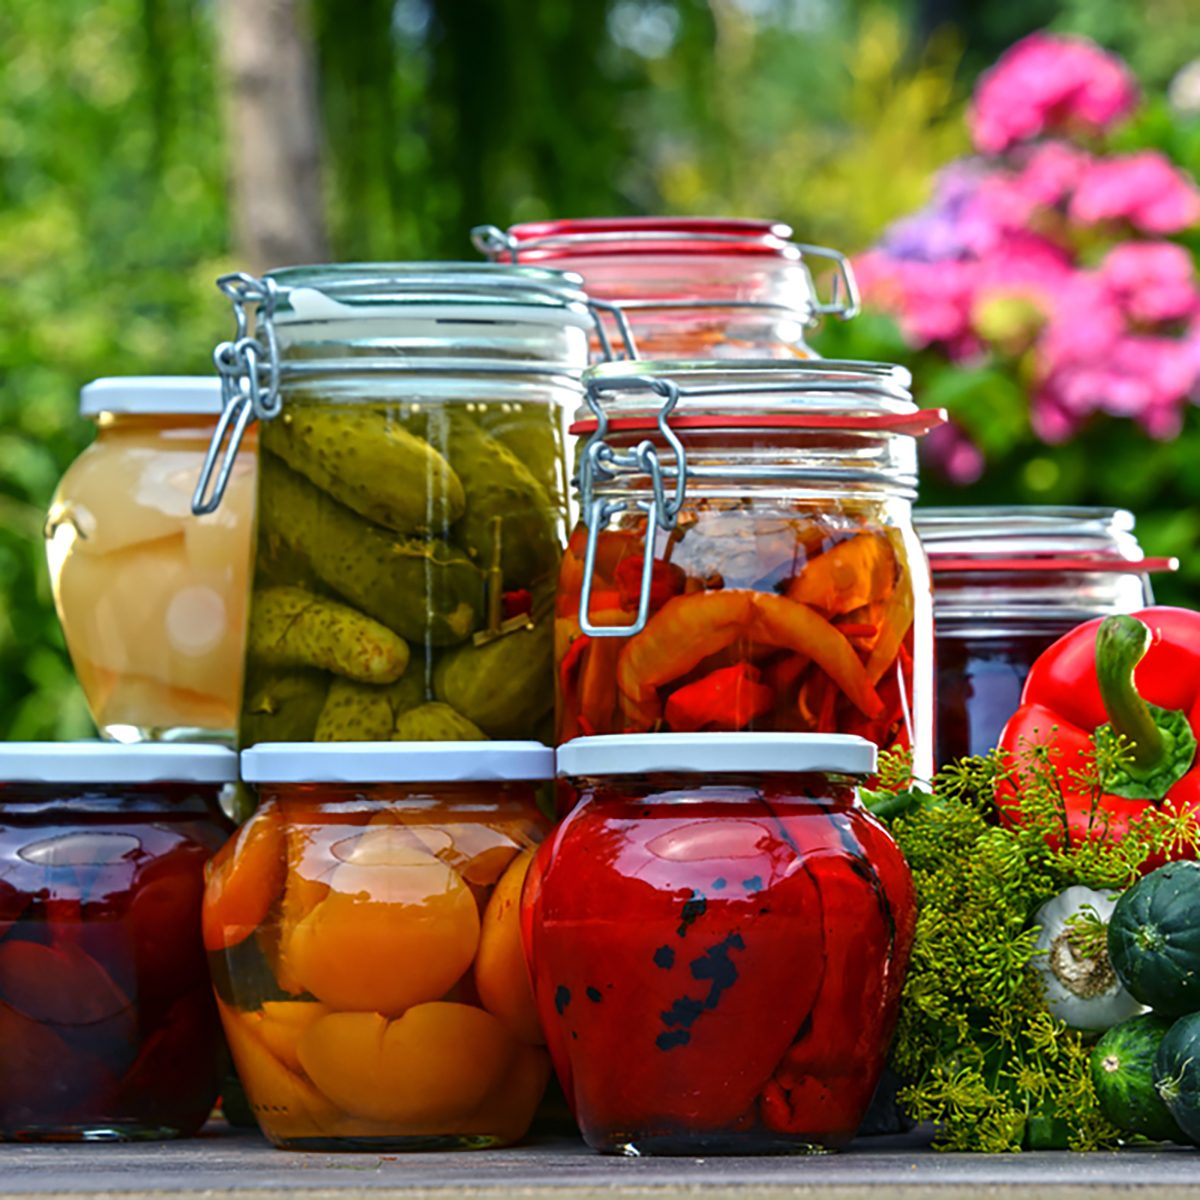 Jars of pickled vegetables and fruits in the garden.